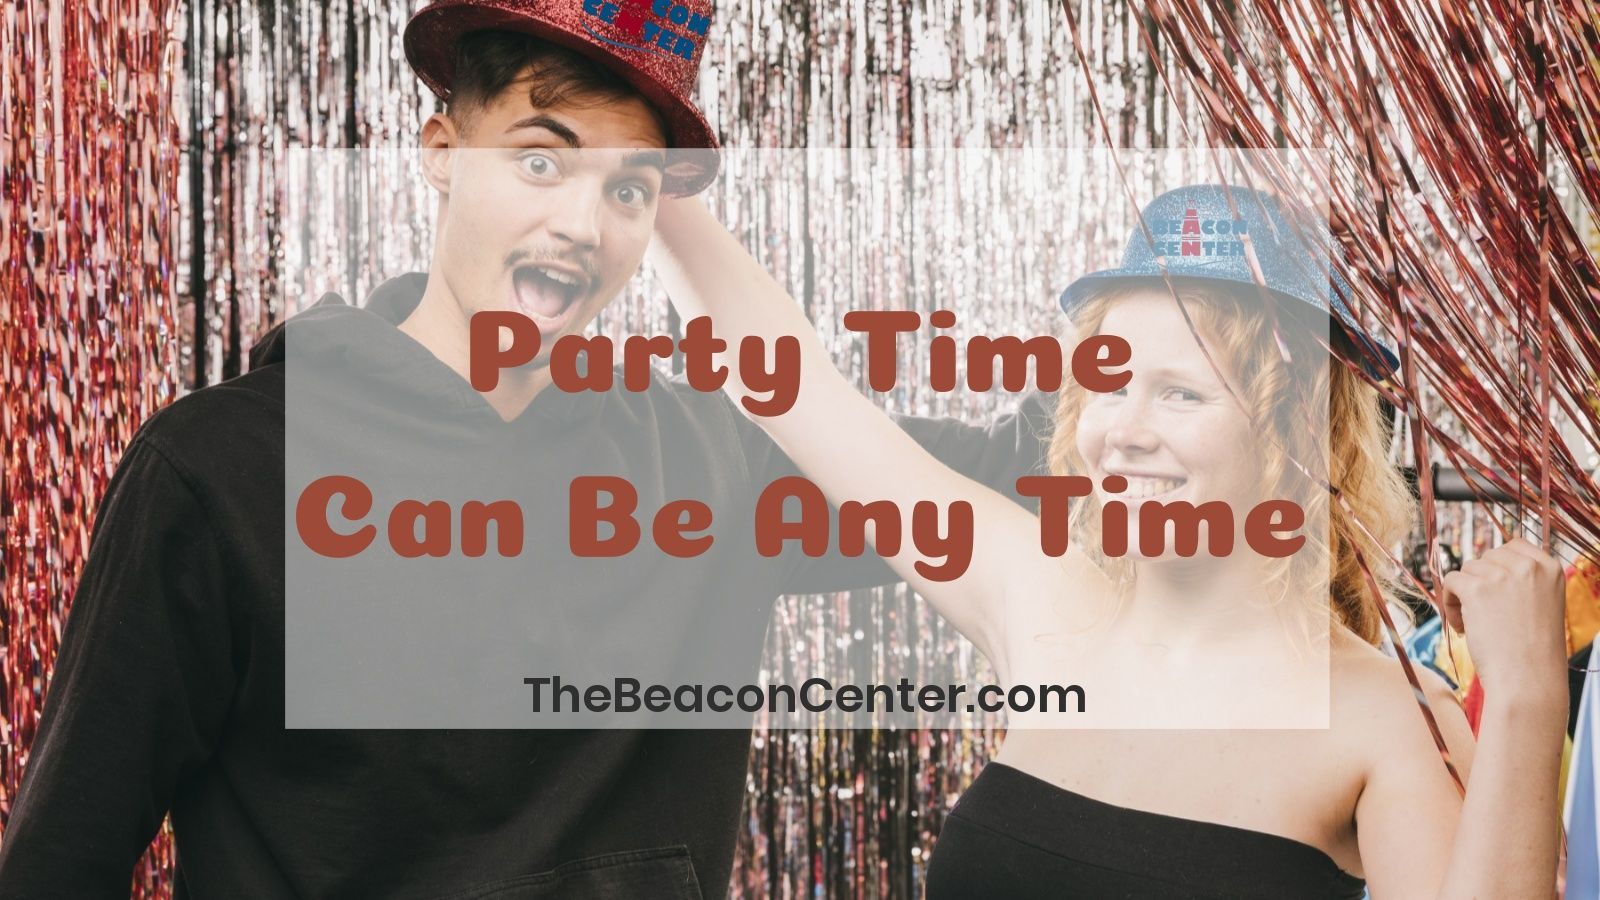 Party time any time photo